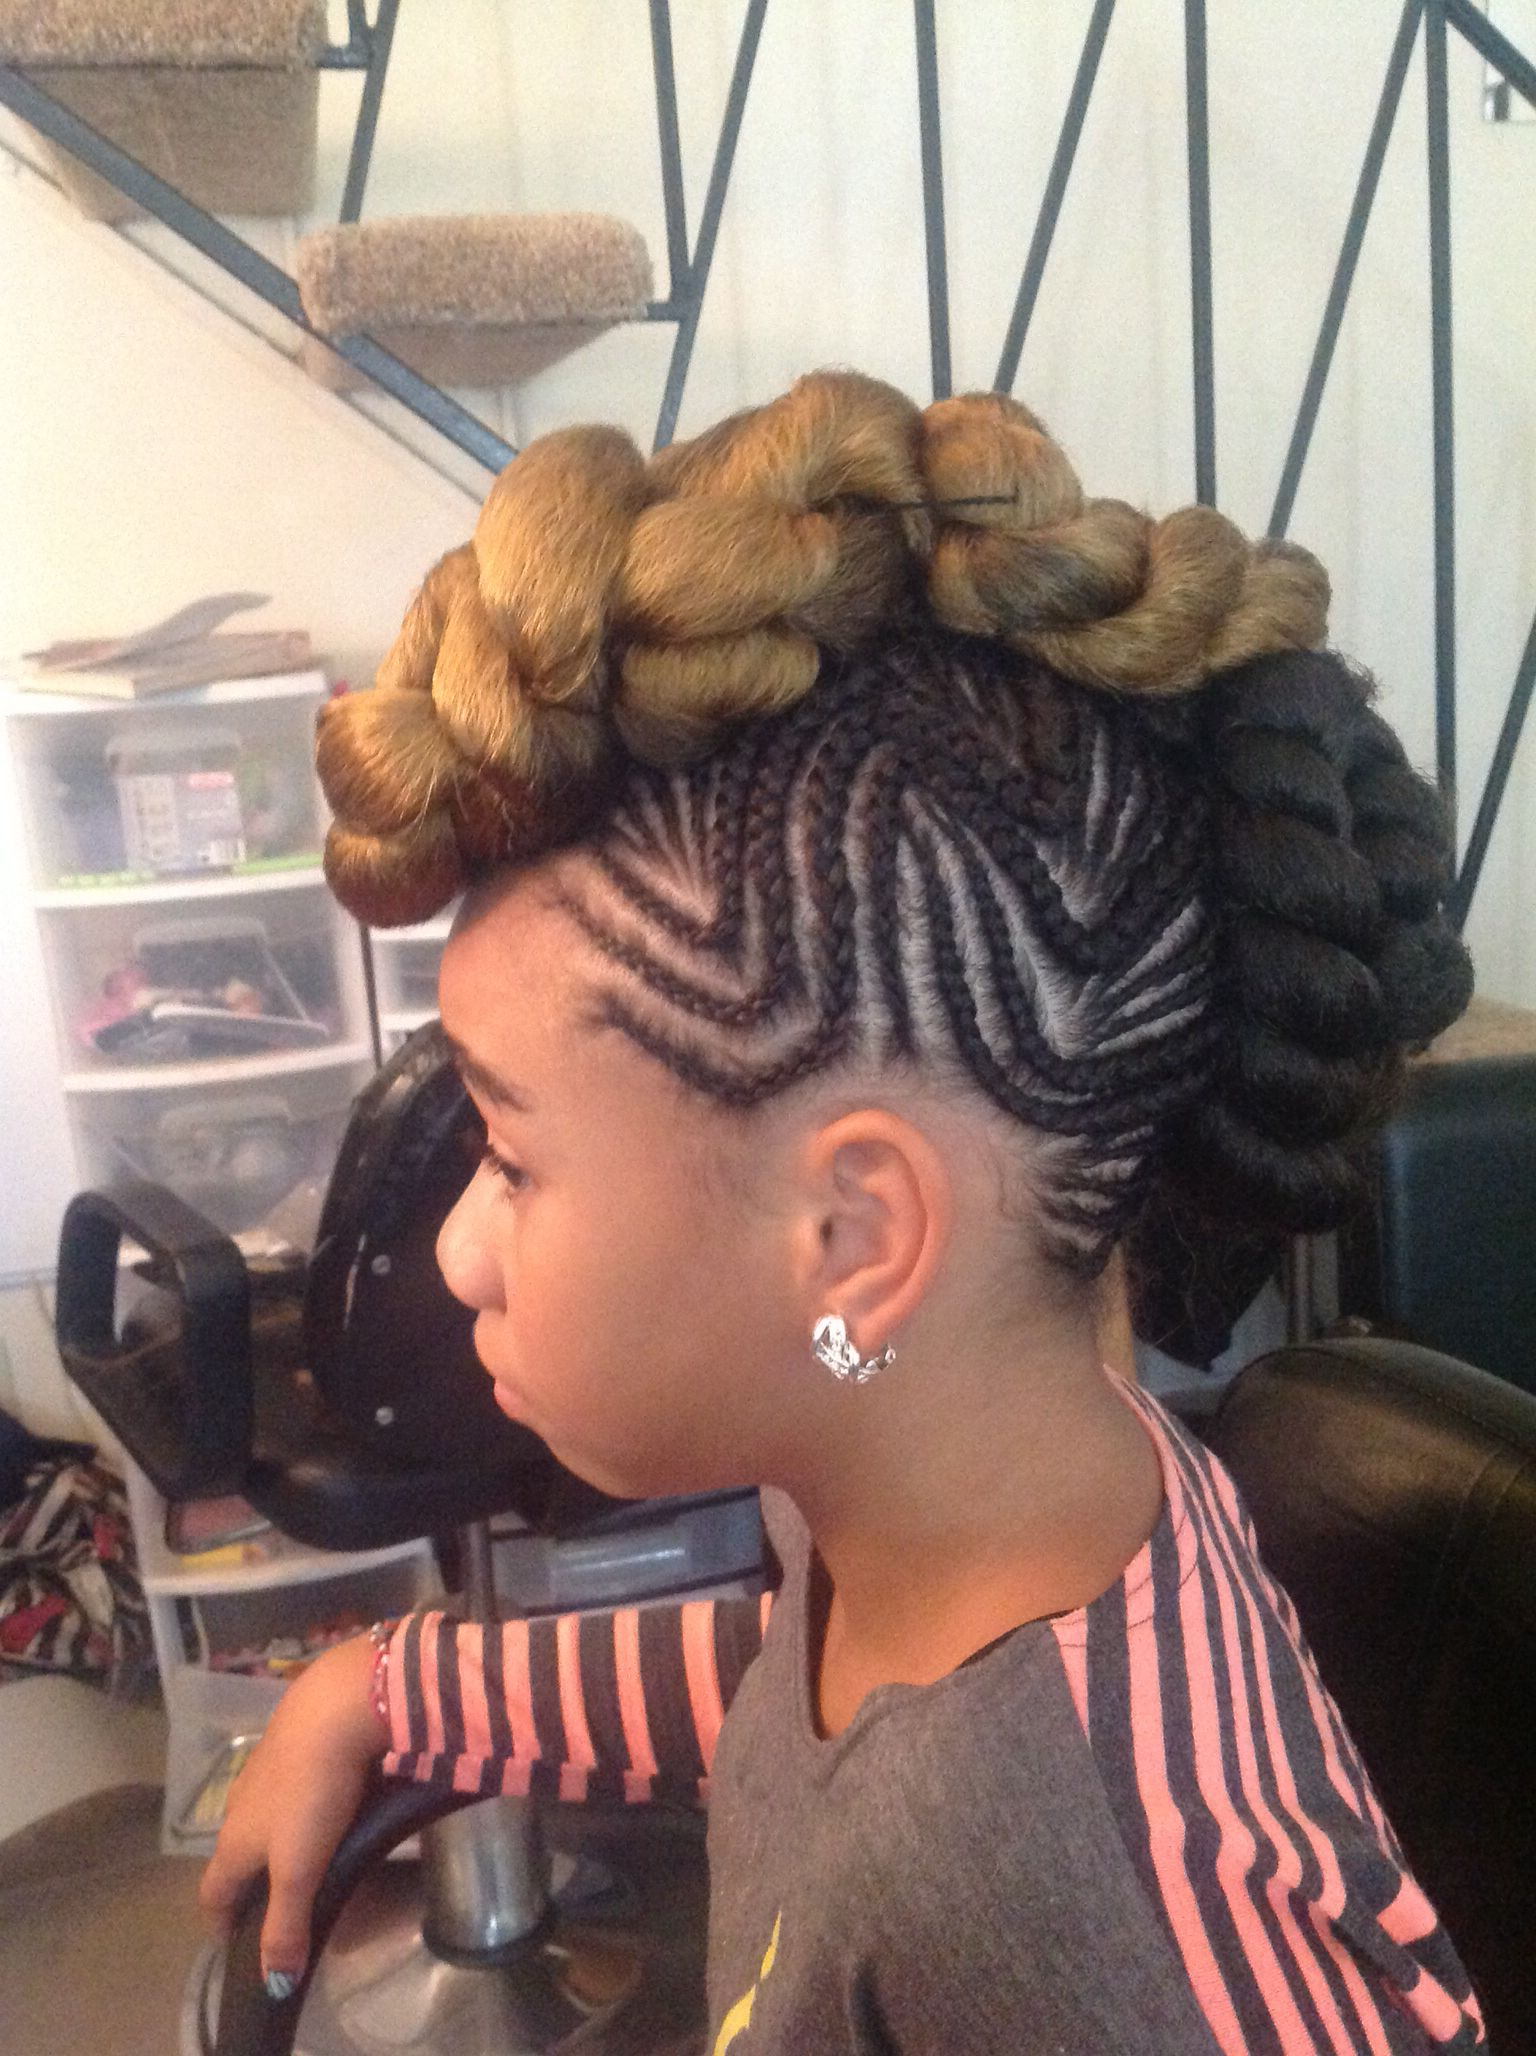 208 Braided Mohawk Hairstyles For Little Girls (Gallery 15 of 20)